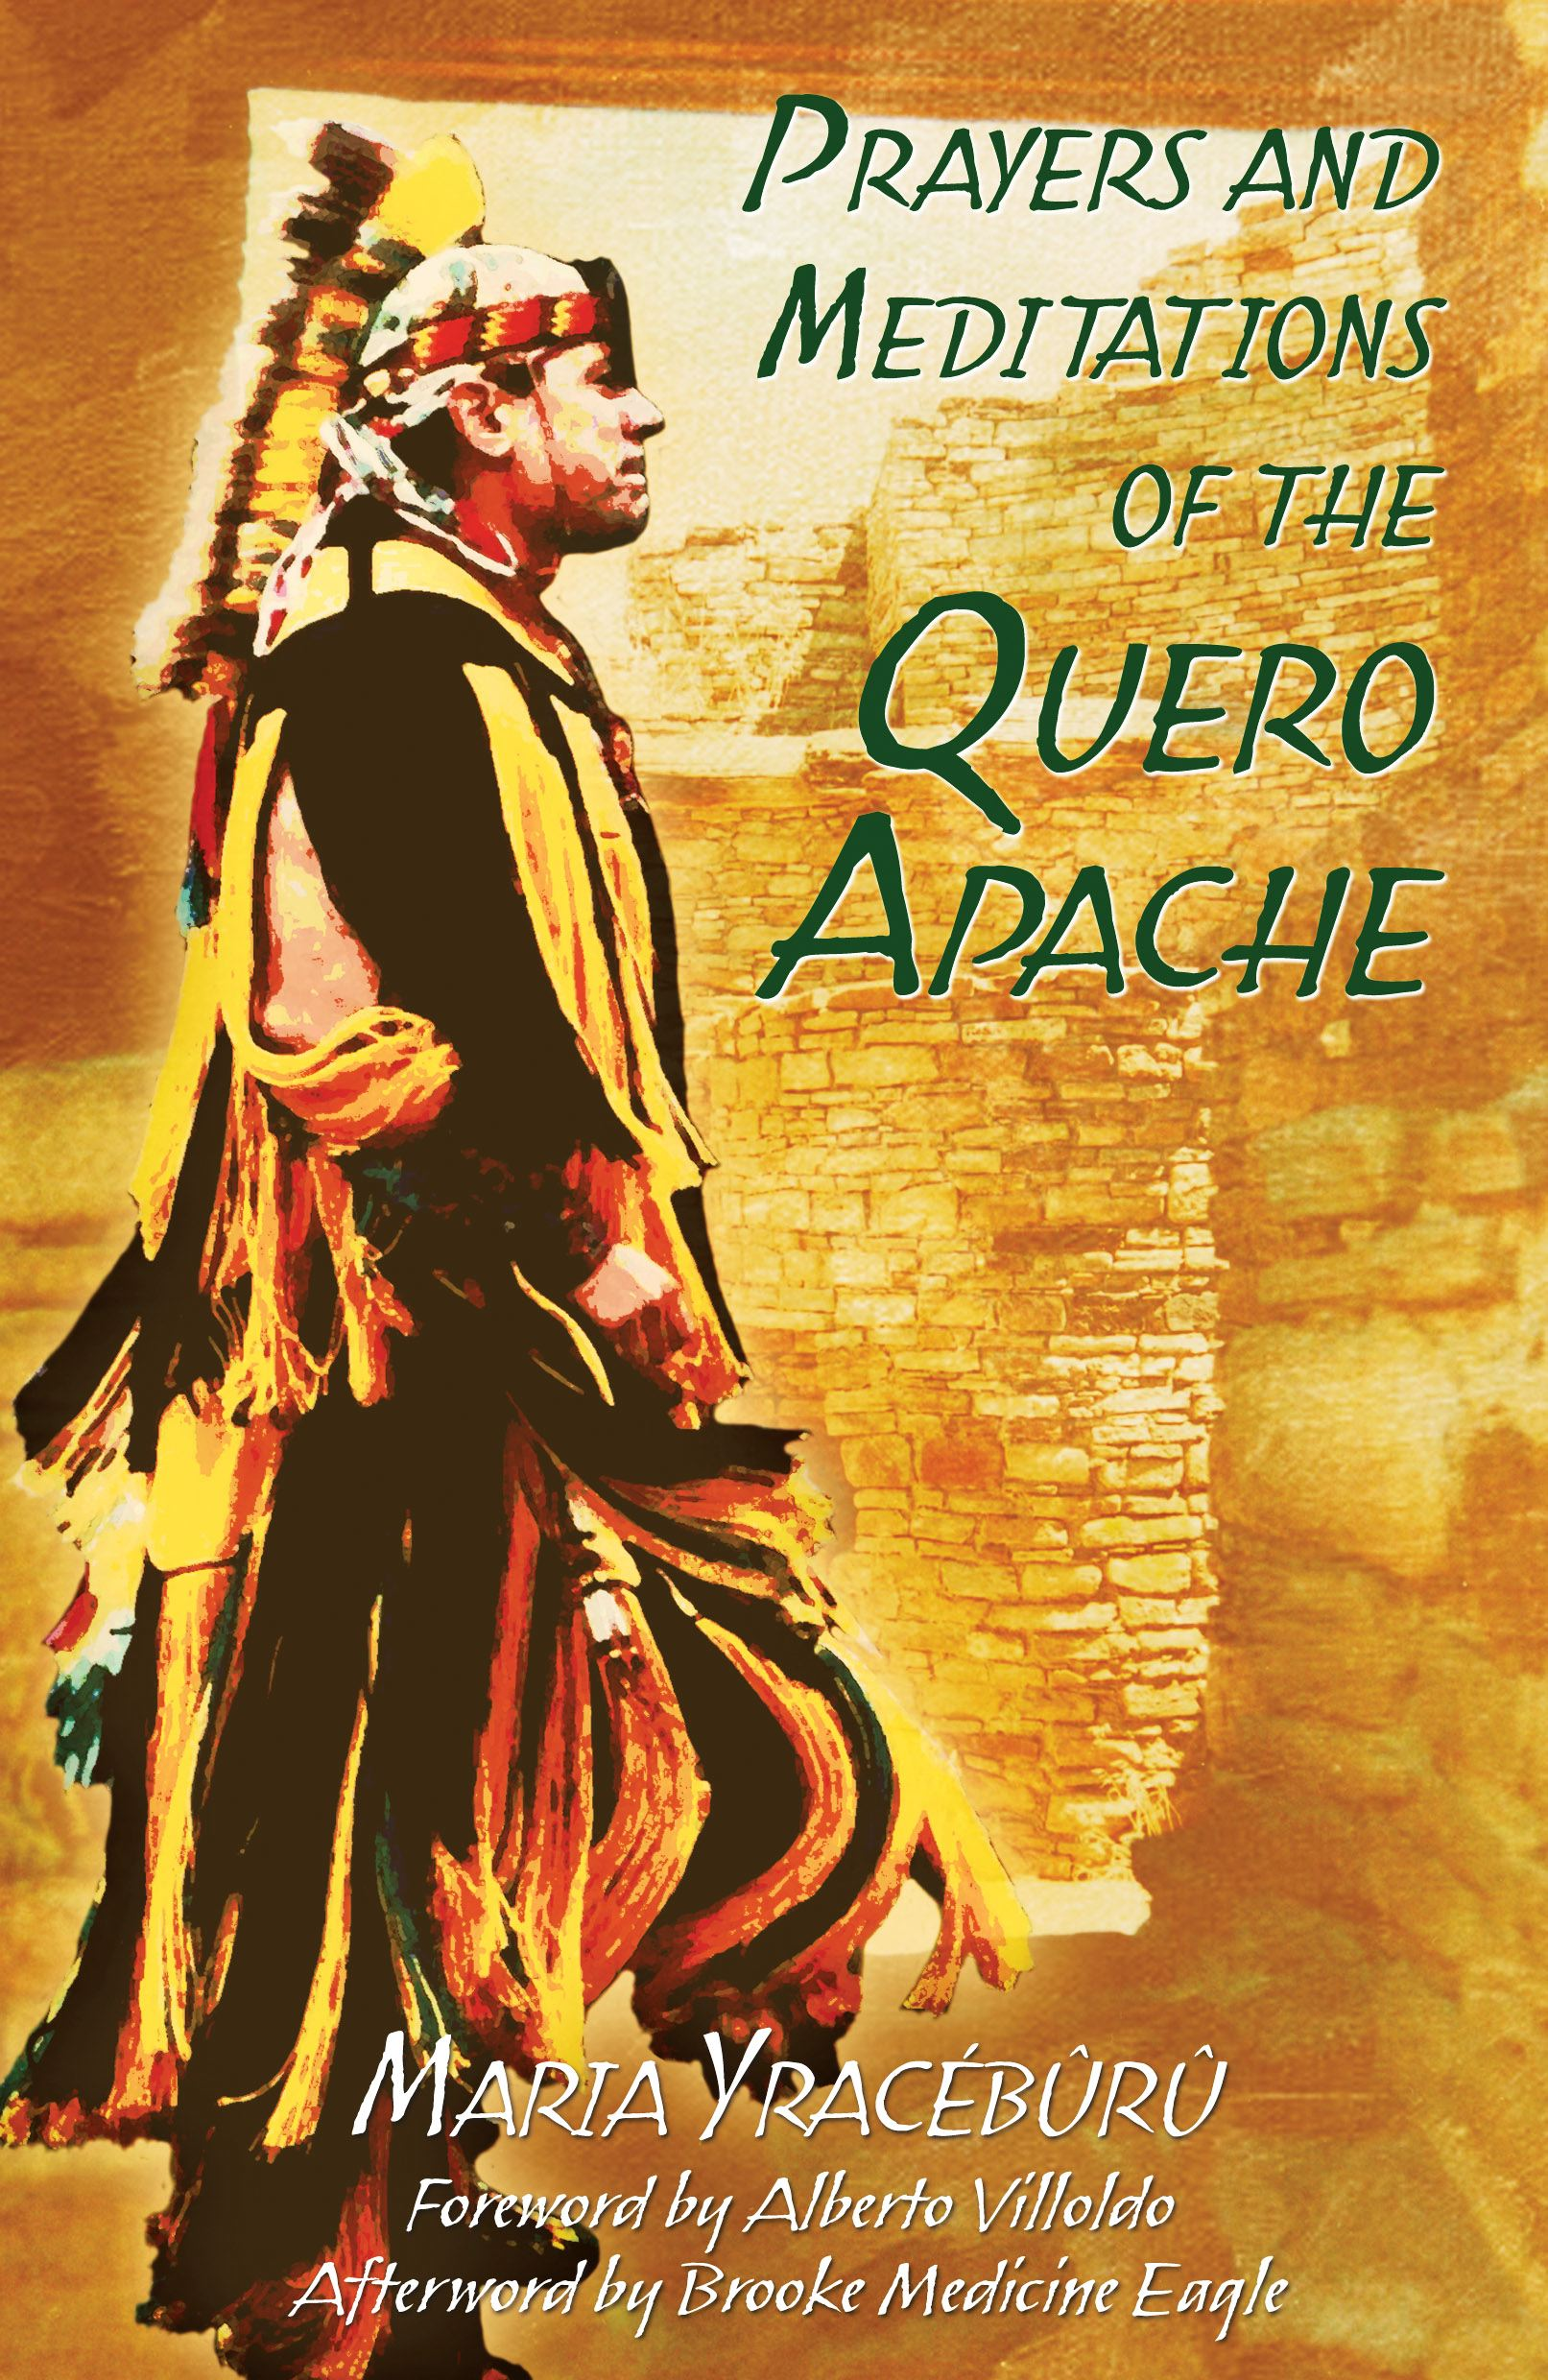 Prayers and meditations of the quero apache 9781591430247 hr